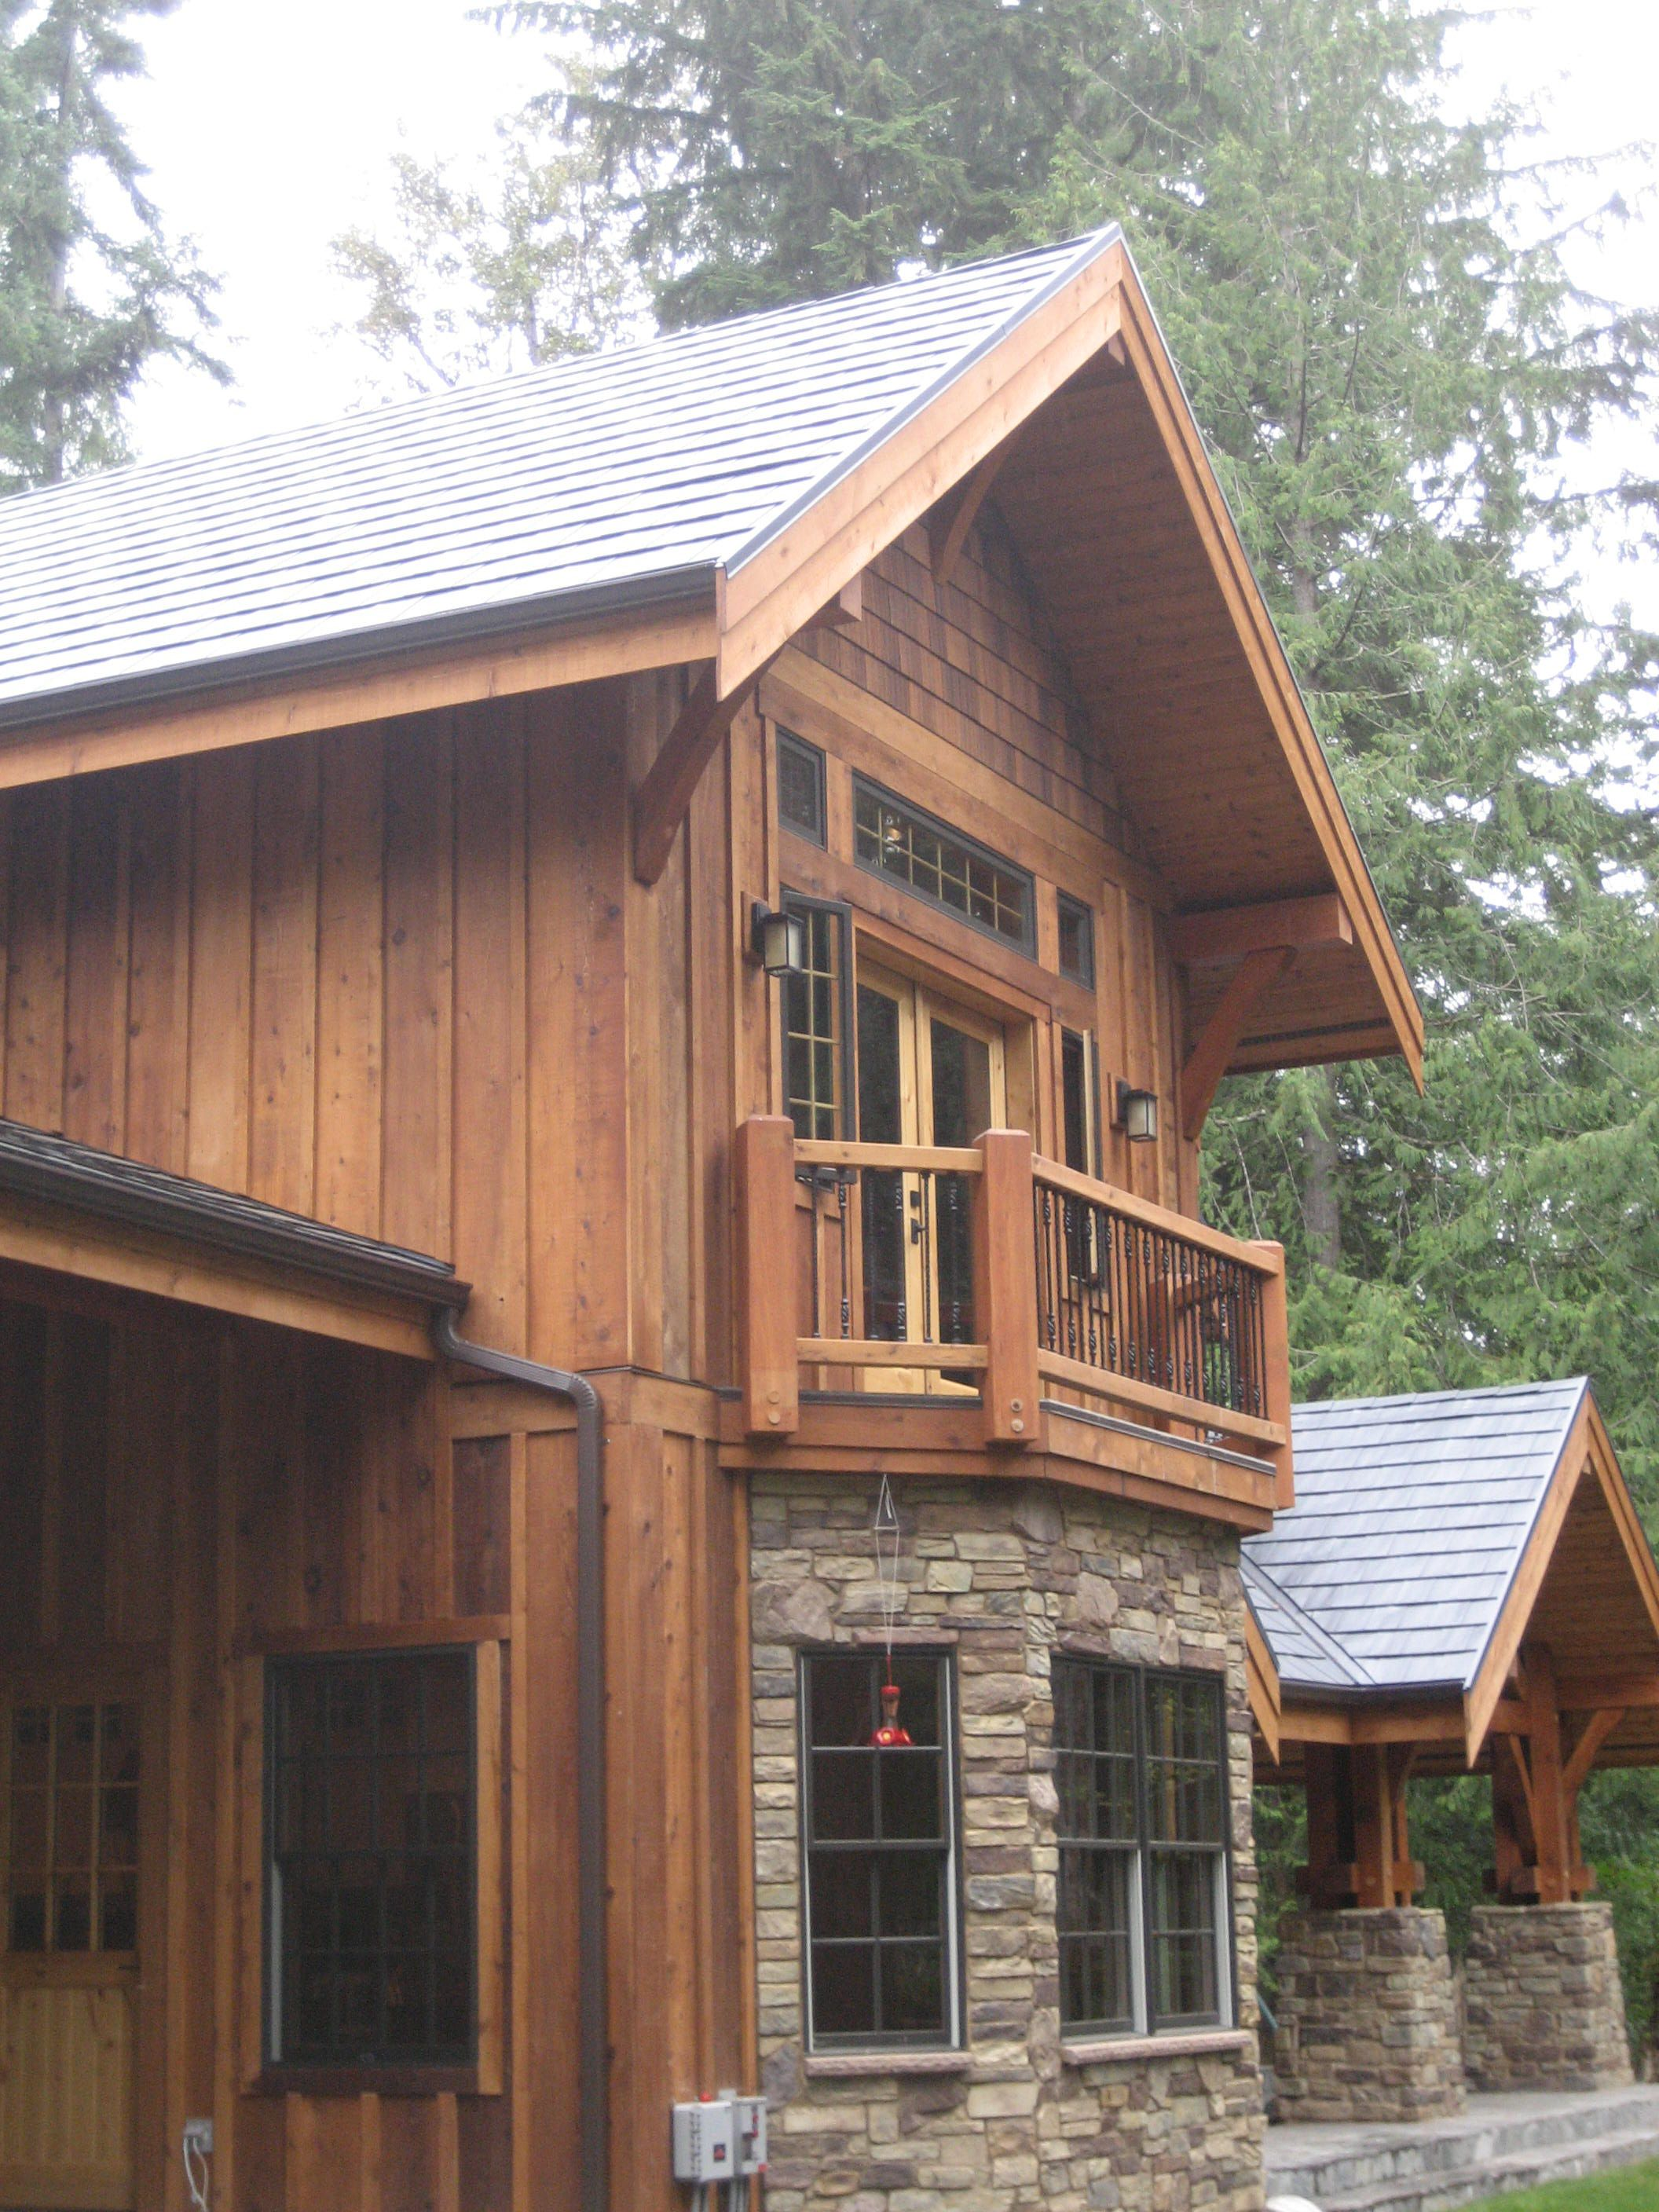 Horizontal Board And Batten Siding Log Cabins Exterior Pictures Exterior Finishes Your Log